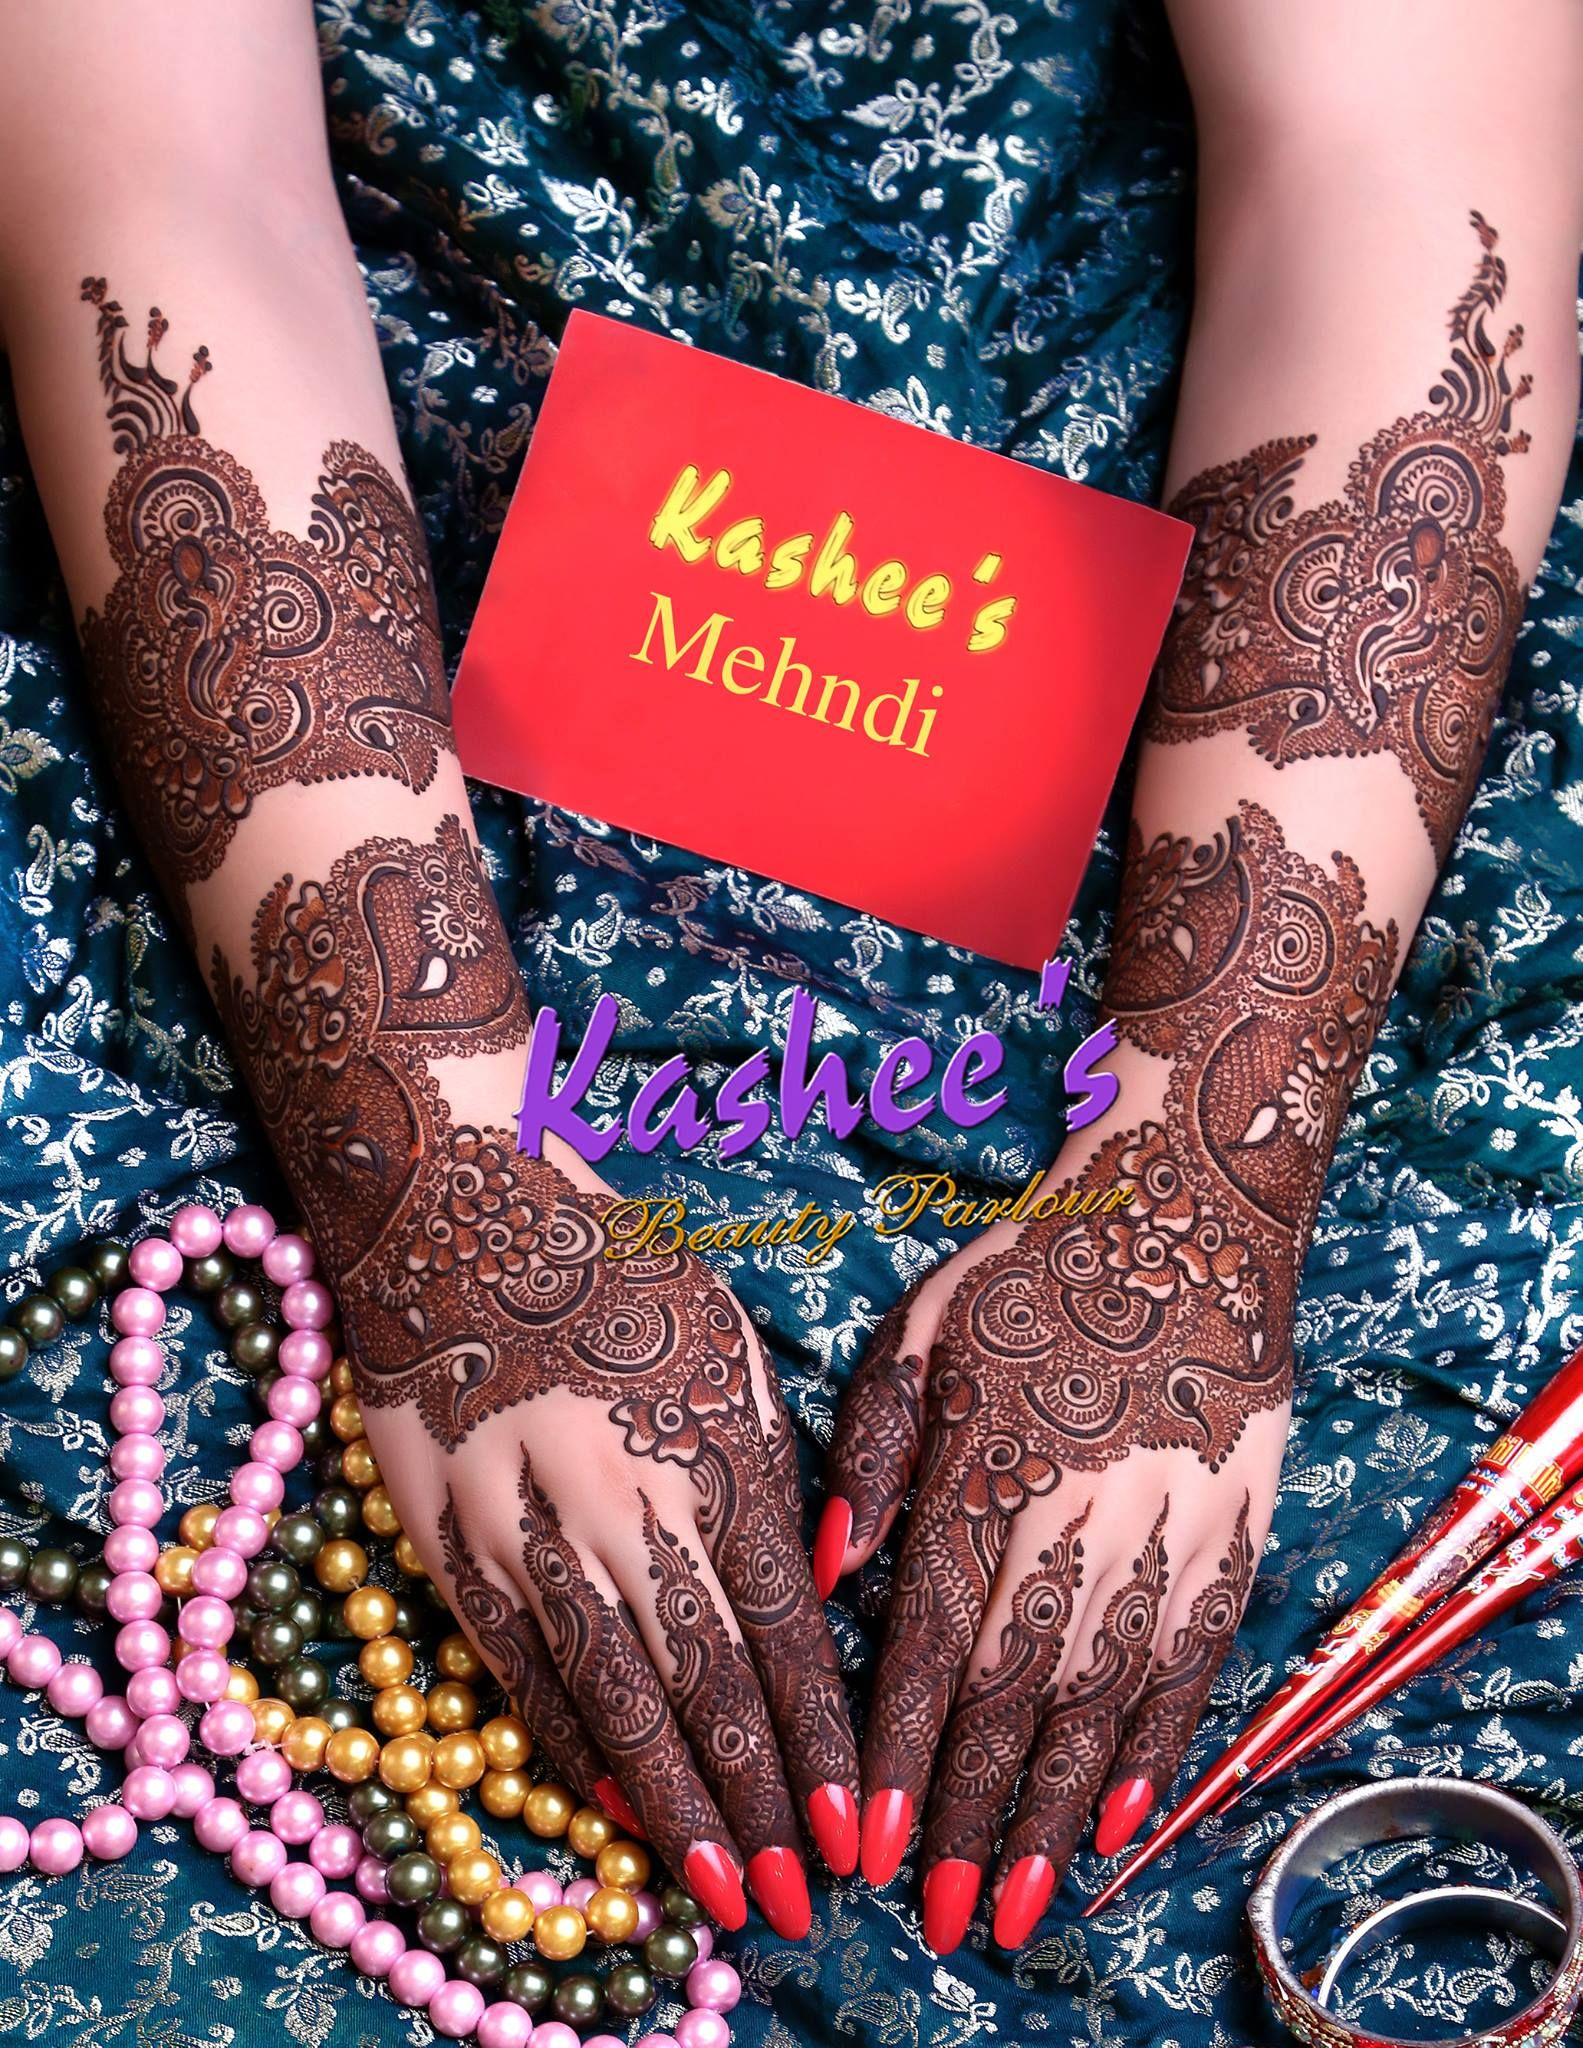 Very Gorgeous Mehndi Design By Kashee S Beauty Parlour Mehndi Designs Henna Designs Bridal Henna Designs